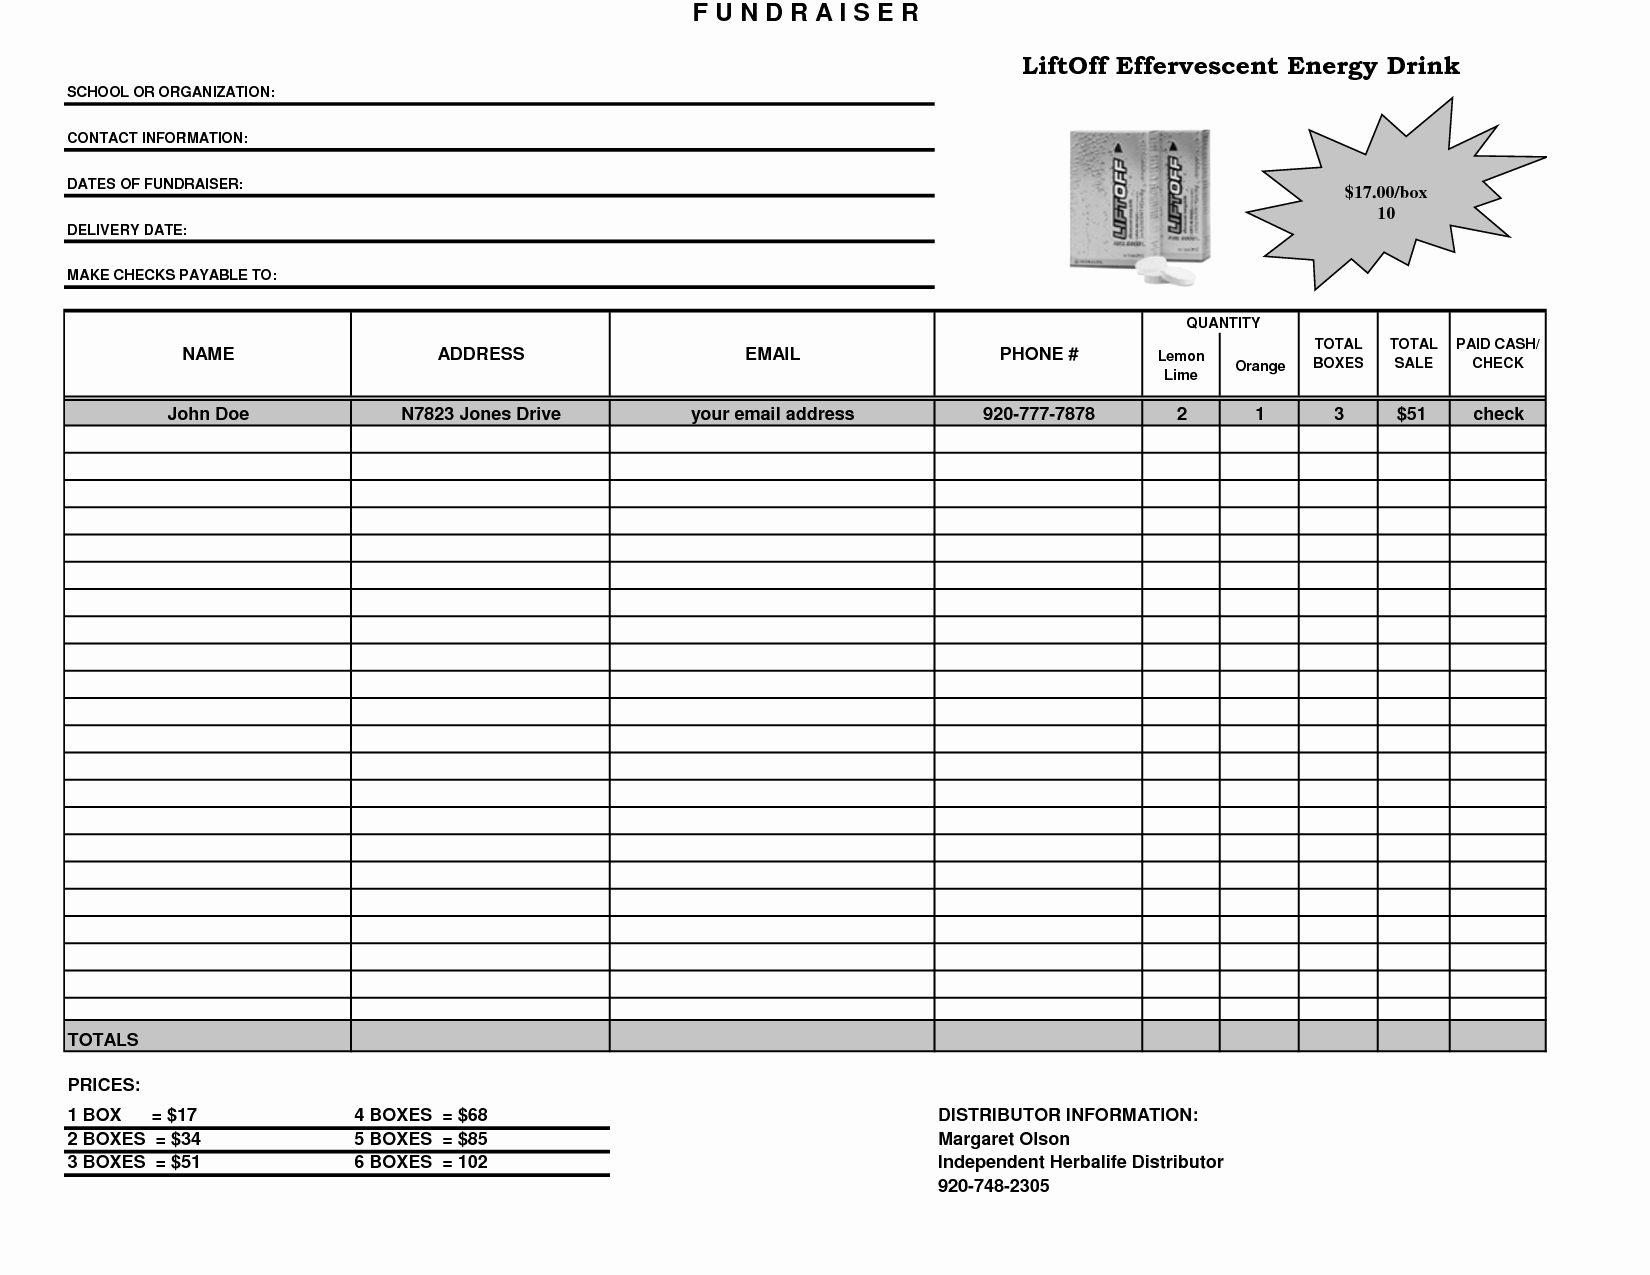 Fundraiser order form Template Excel Beautiful Fundraiser Template Excel Fundraiser order form Template